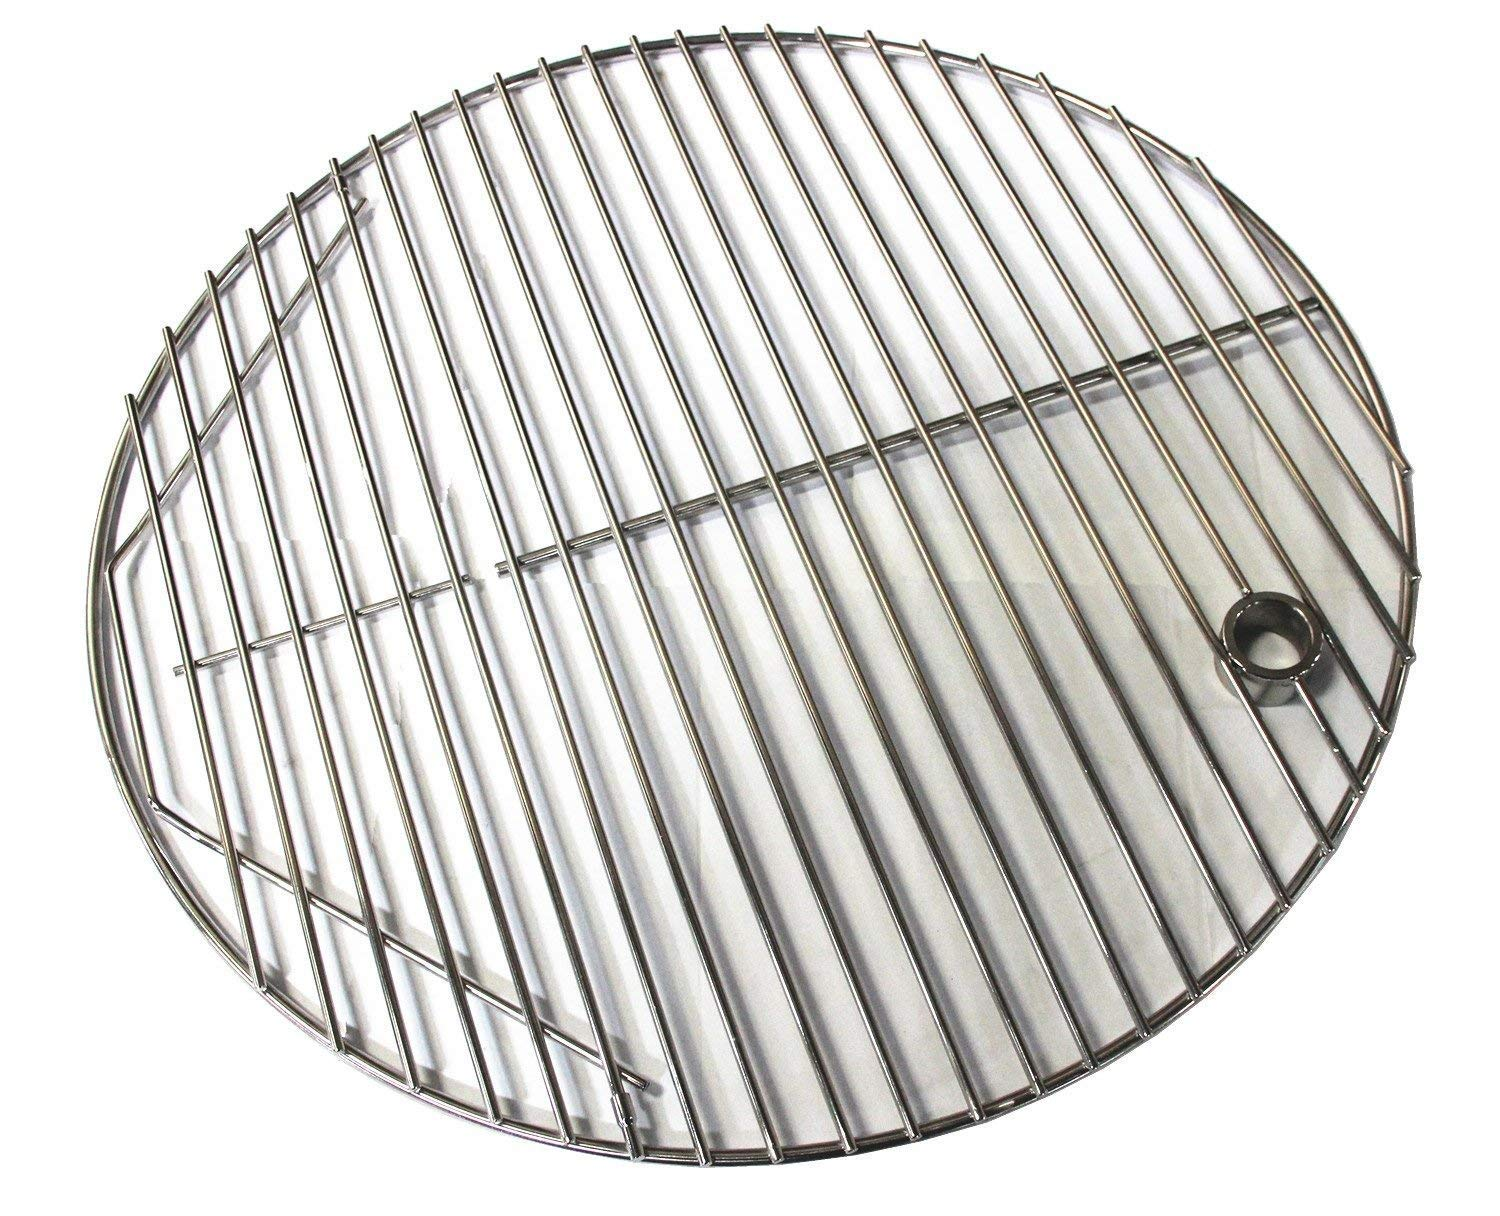 Hongso SCG195 19.5 BBQ Stainless Steel Round Cooking Grates / Cooking Grid for Kamado Ceramic Grill 20 inch Grill Grate